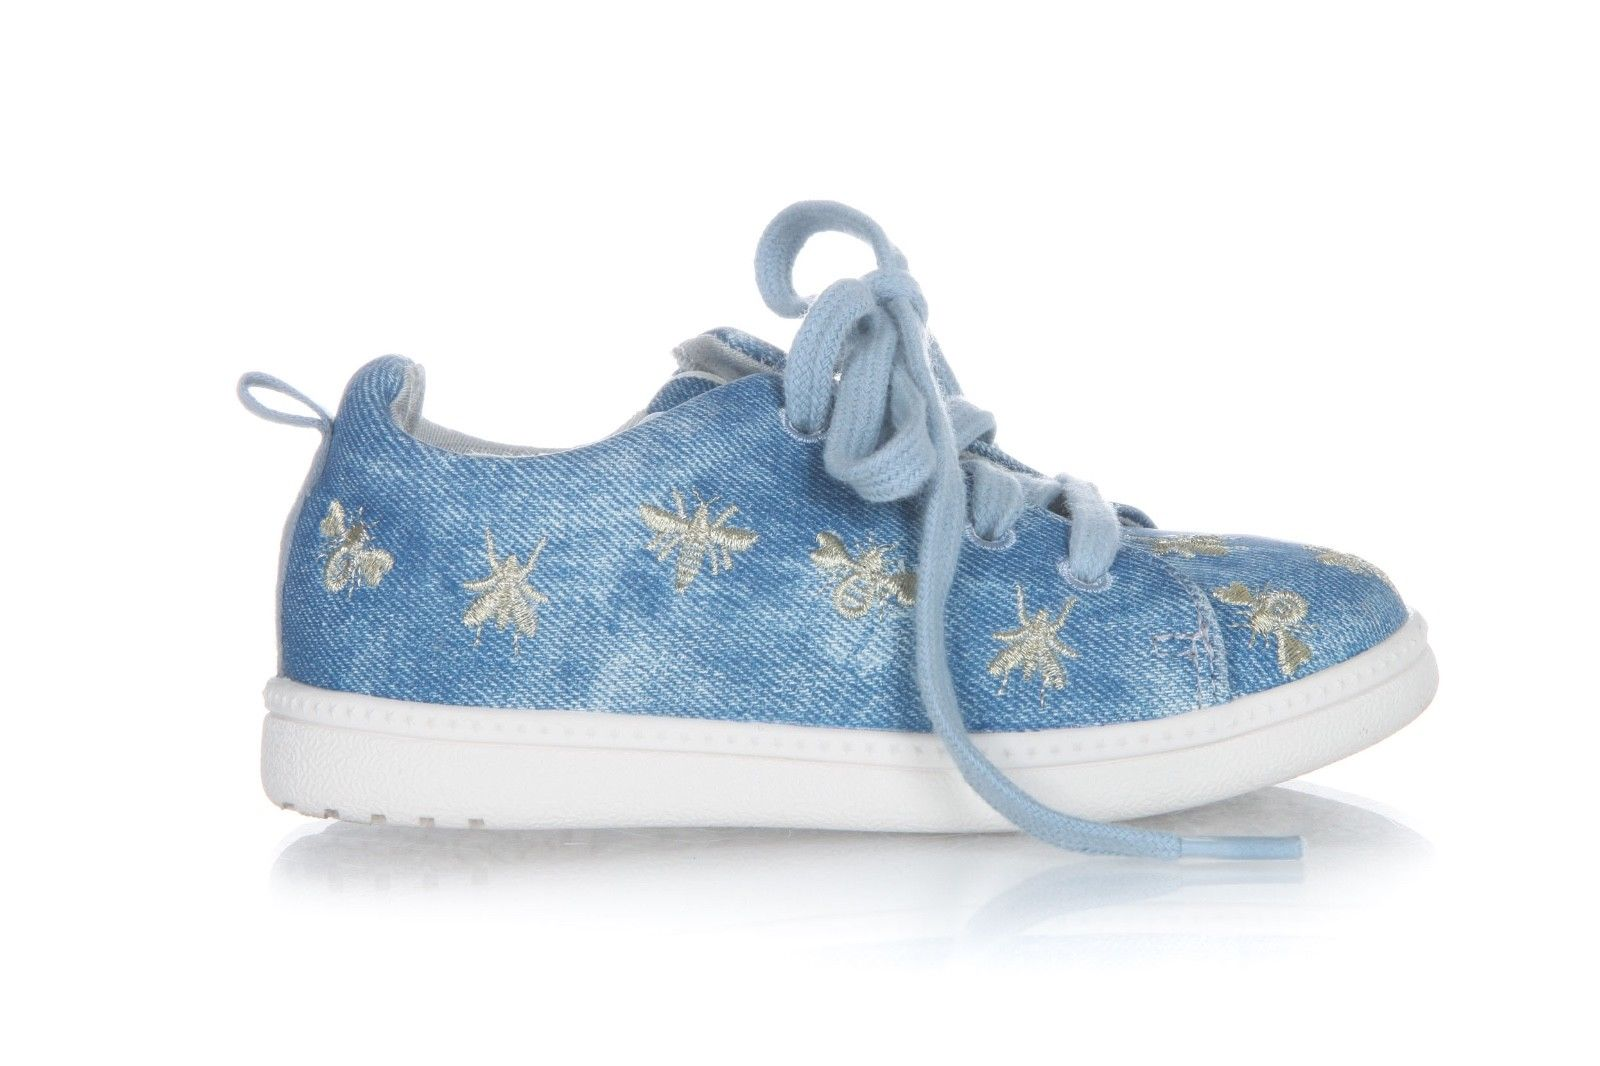 ZARA Baby Denim Blue Lace Up Zip Sneakers Bugs Print Size 23 (6.5)